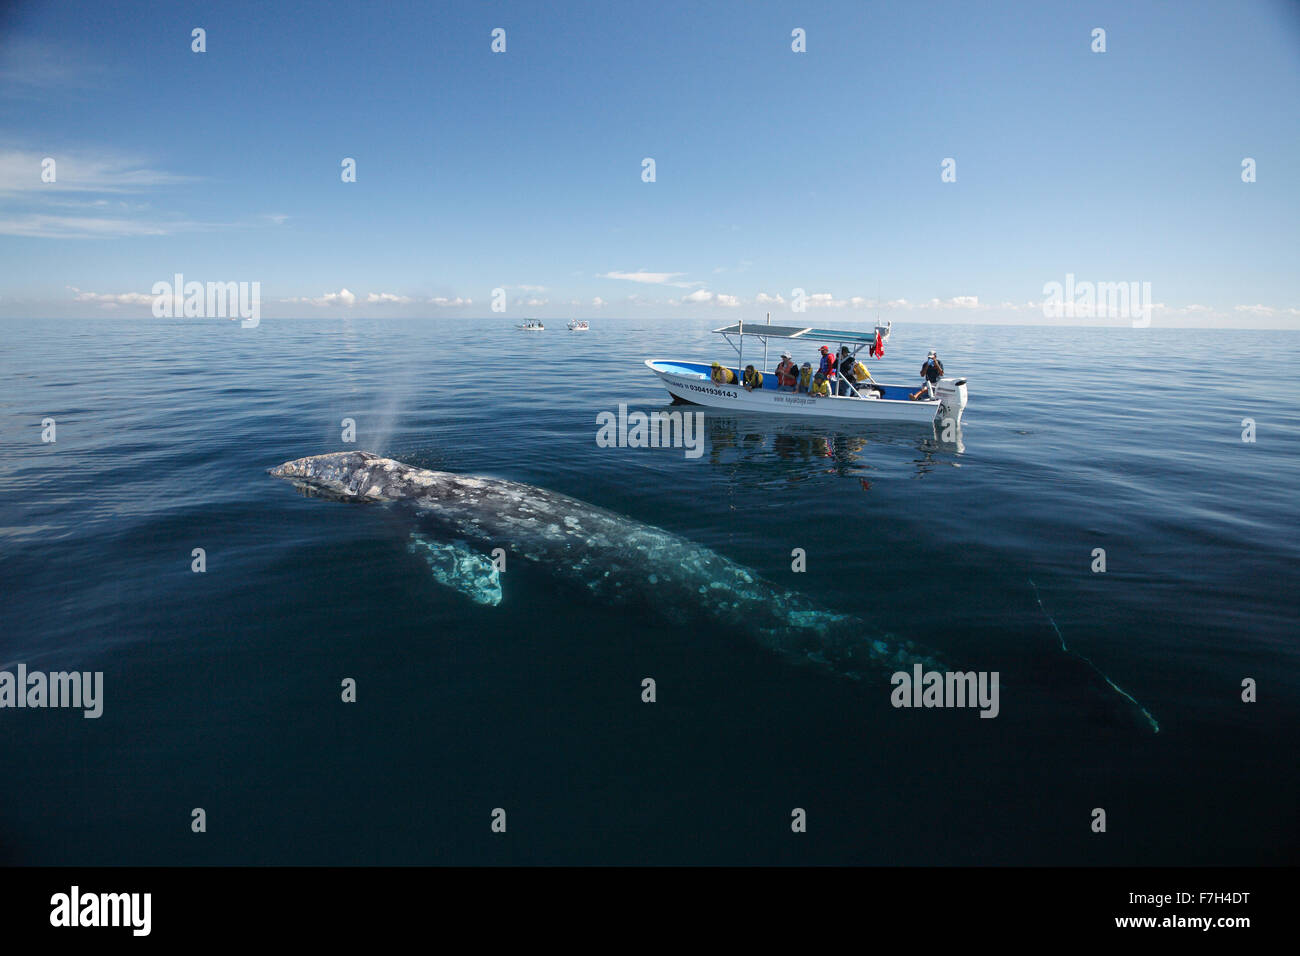 pr7012-D. Gray Whale (Eschrichtius robustus) surfaces to breathe alongside whale-watching boat with tourists. Magdalena - Stock Image